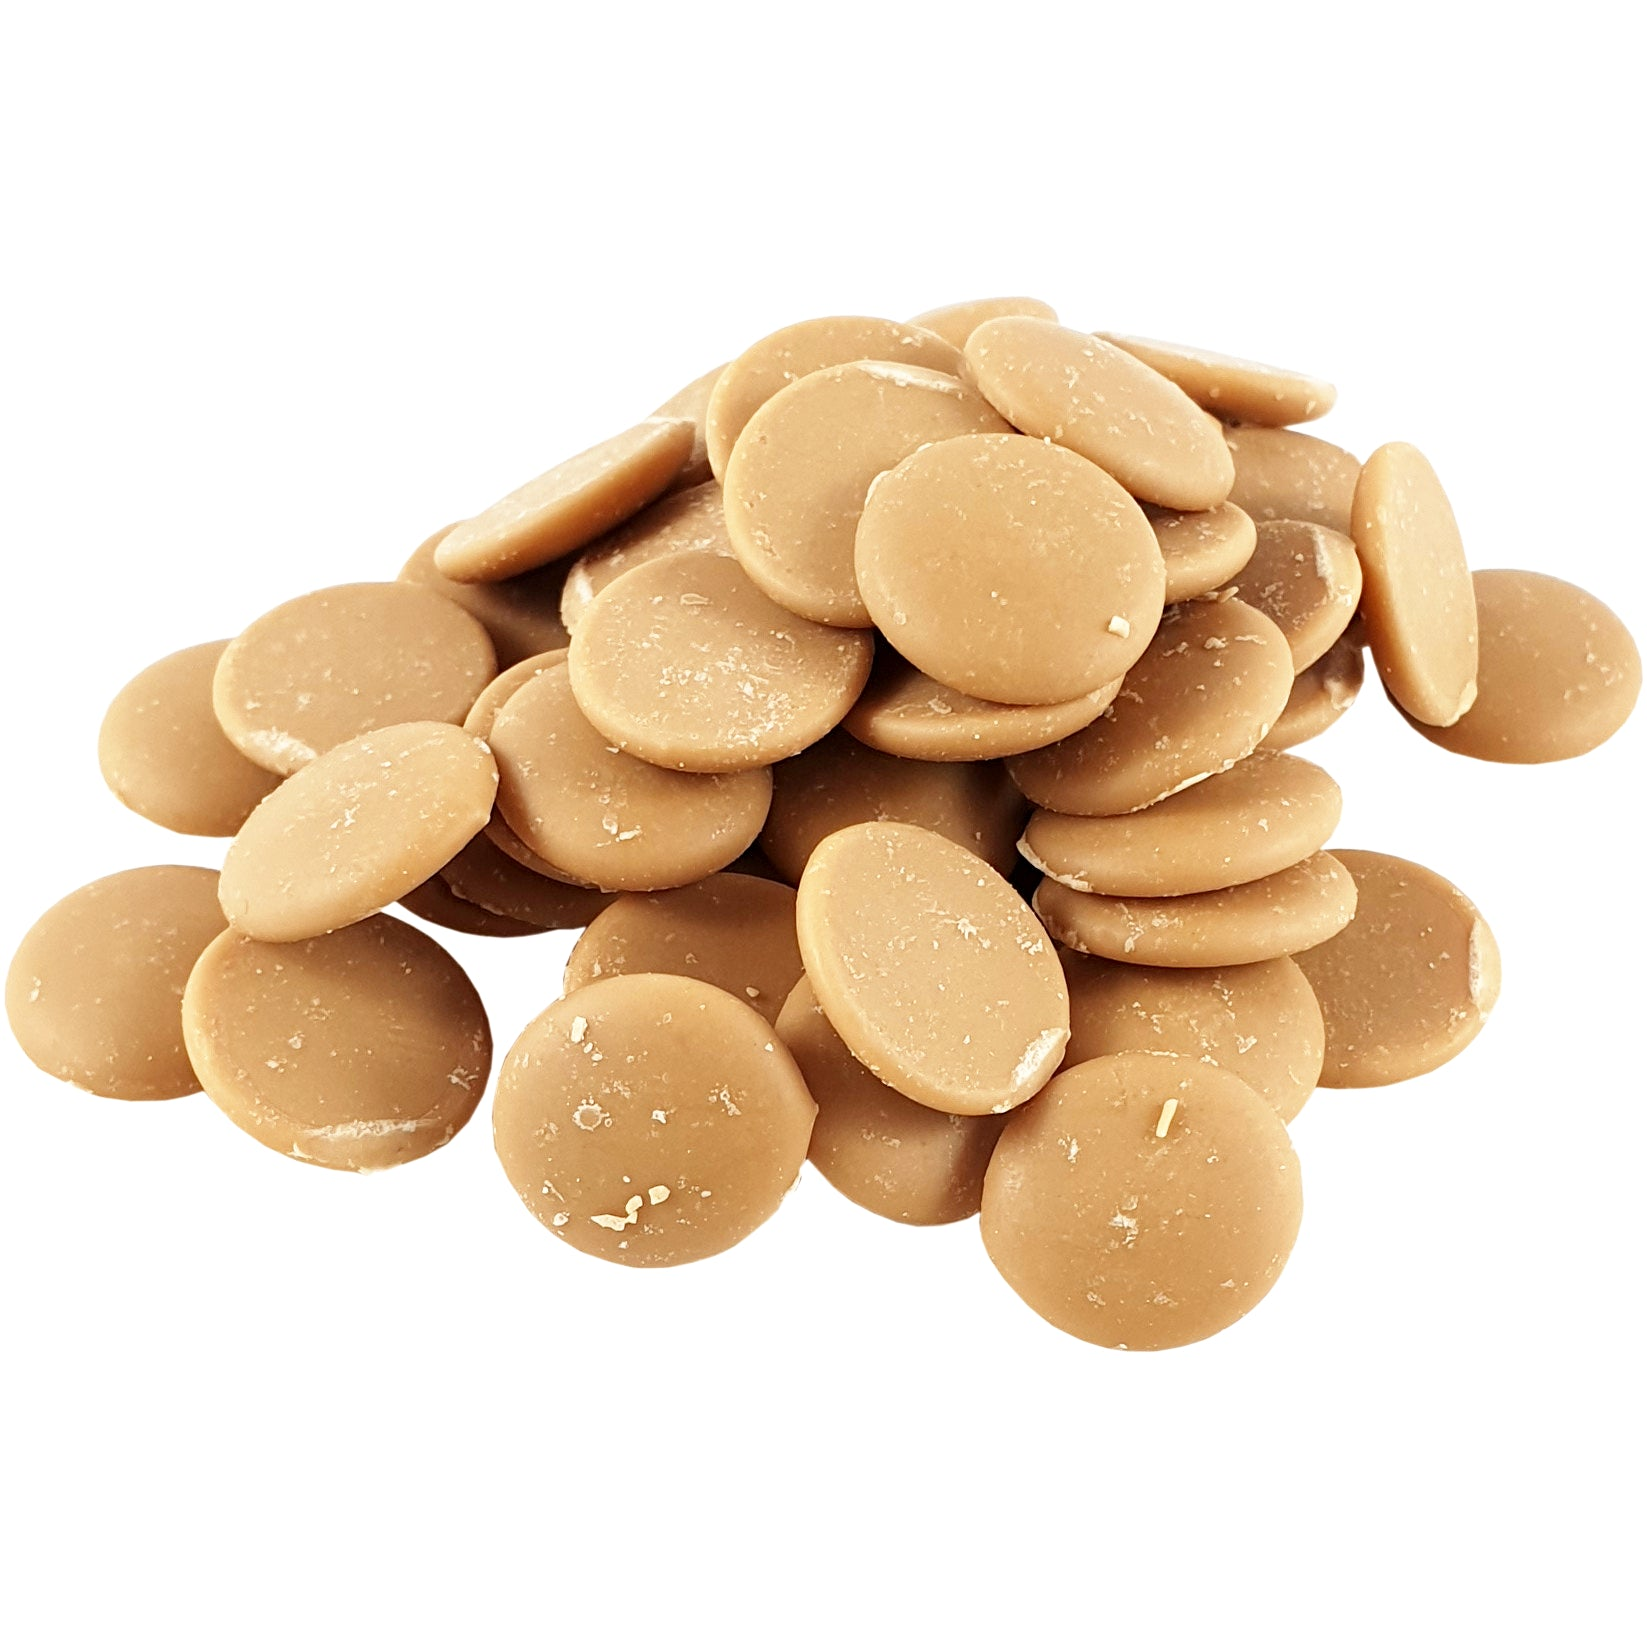 Chocolate Buttons Caramel Couverture chocolate - Gluten Free 250g